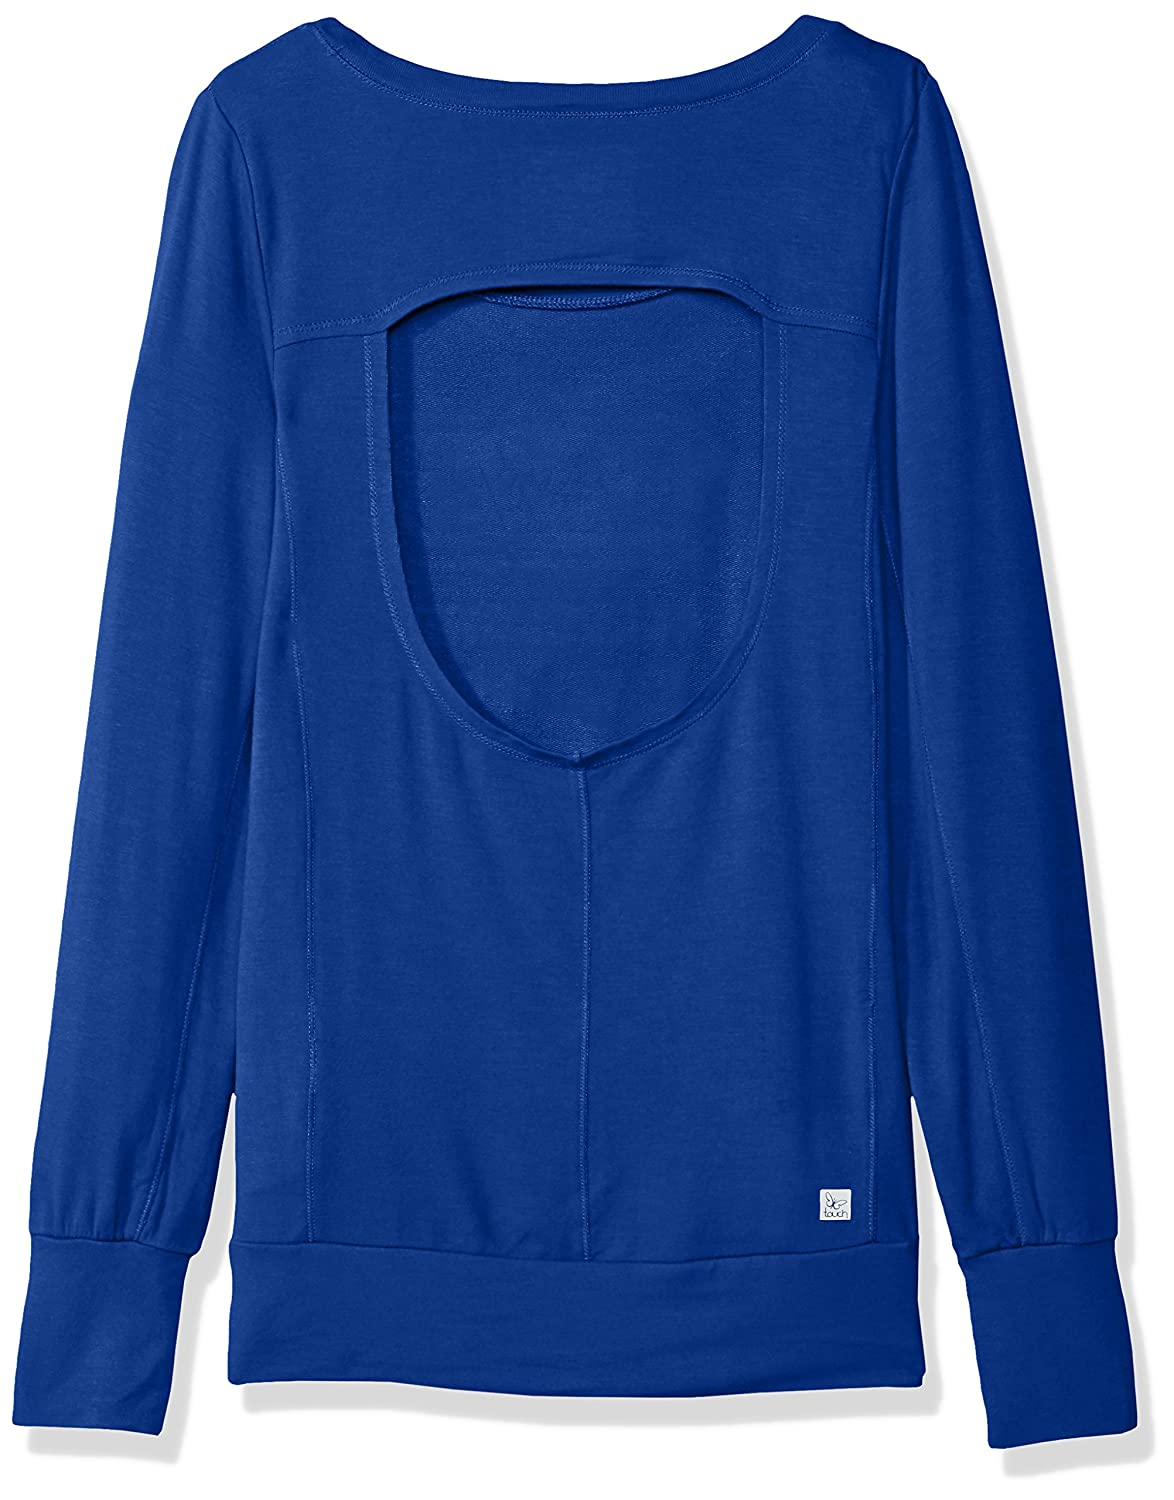 Touch by Alyssa Milano NBA Lateral Sweatshirt